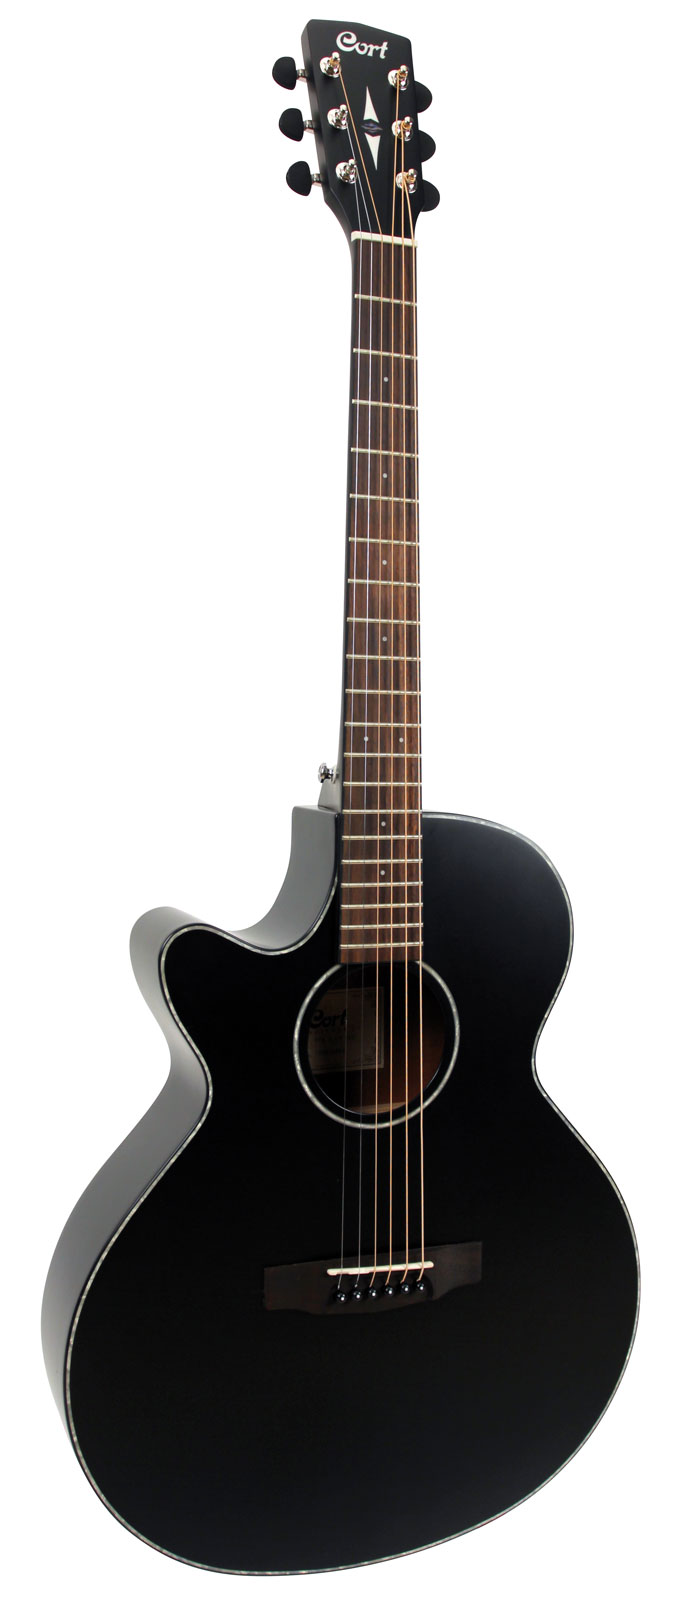 Cort Gaucher Sfx-e Black Satin